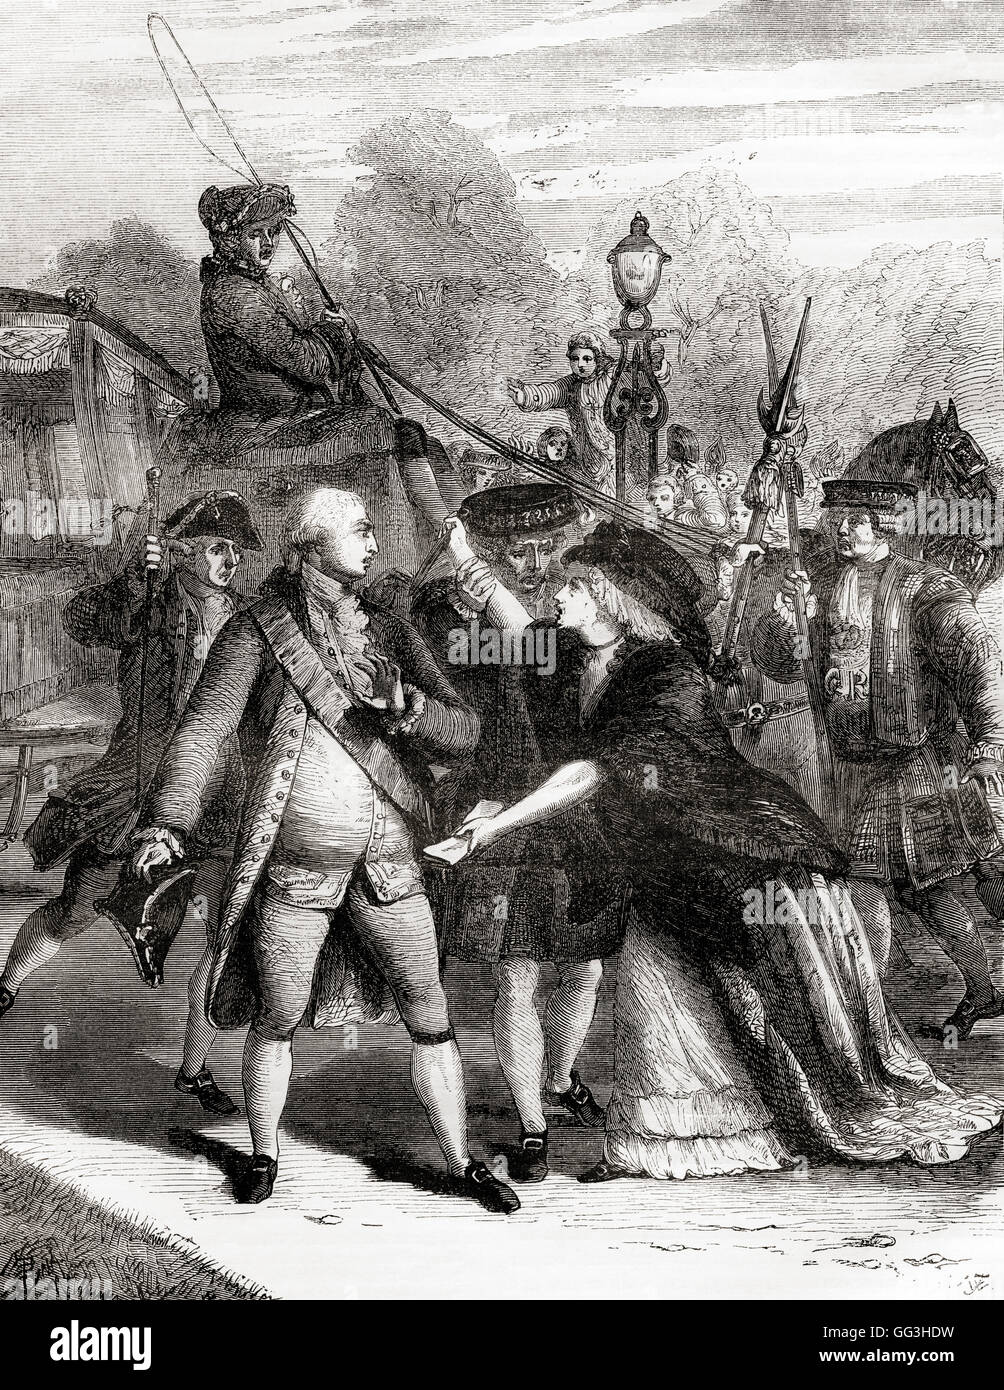 The attempted assassination of king George III in 1786 by Margaret Nicholson, (c. 1750 – 1828). Stock Photo